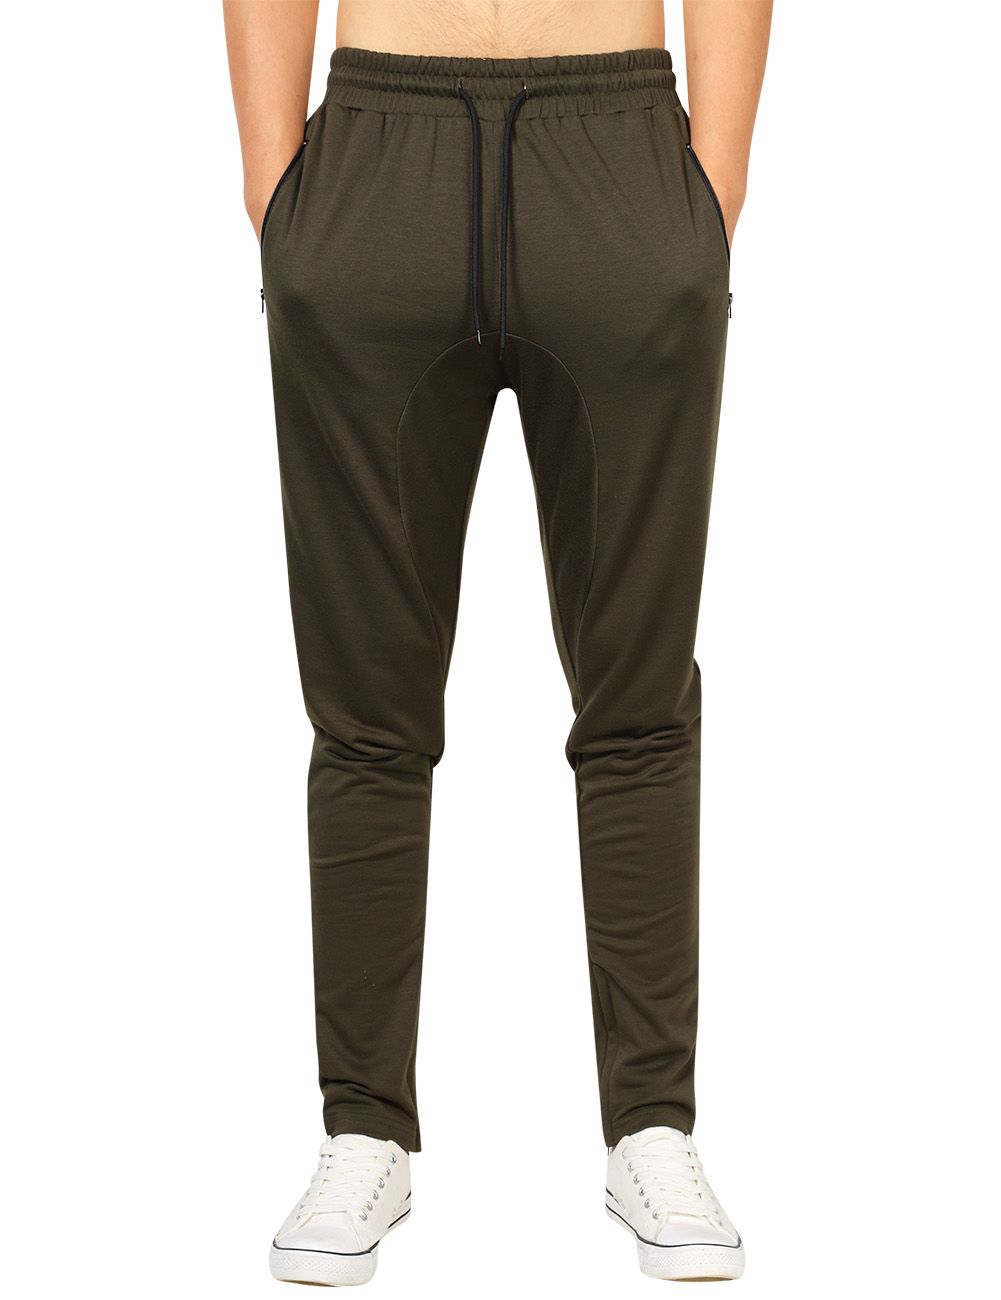 [US Direct] Yong Horse Men's Casual Jogger Pants Fitness Workout Gym Running Sweatpants ArmyGreen_XXL